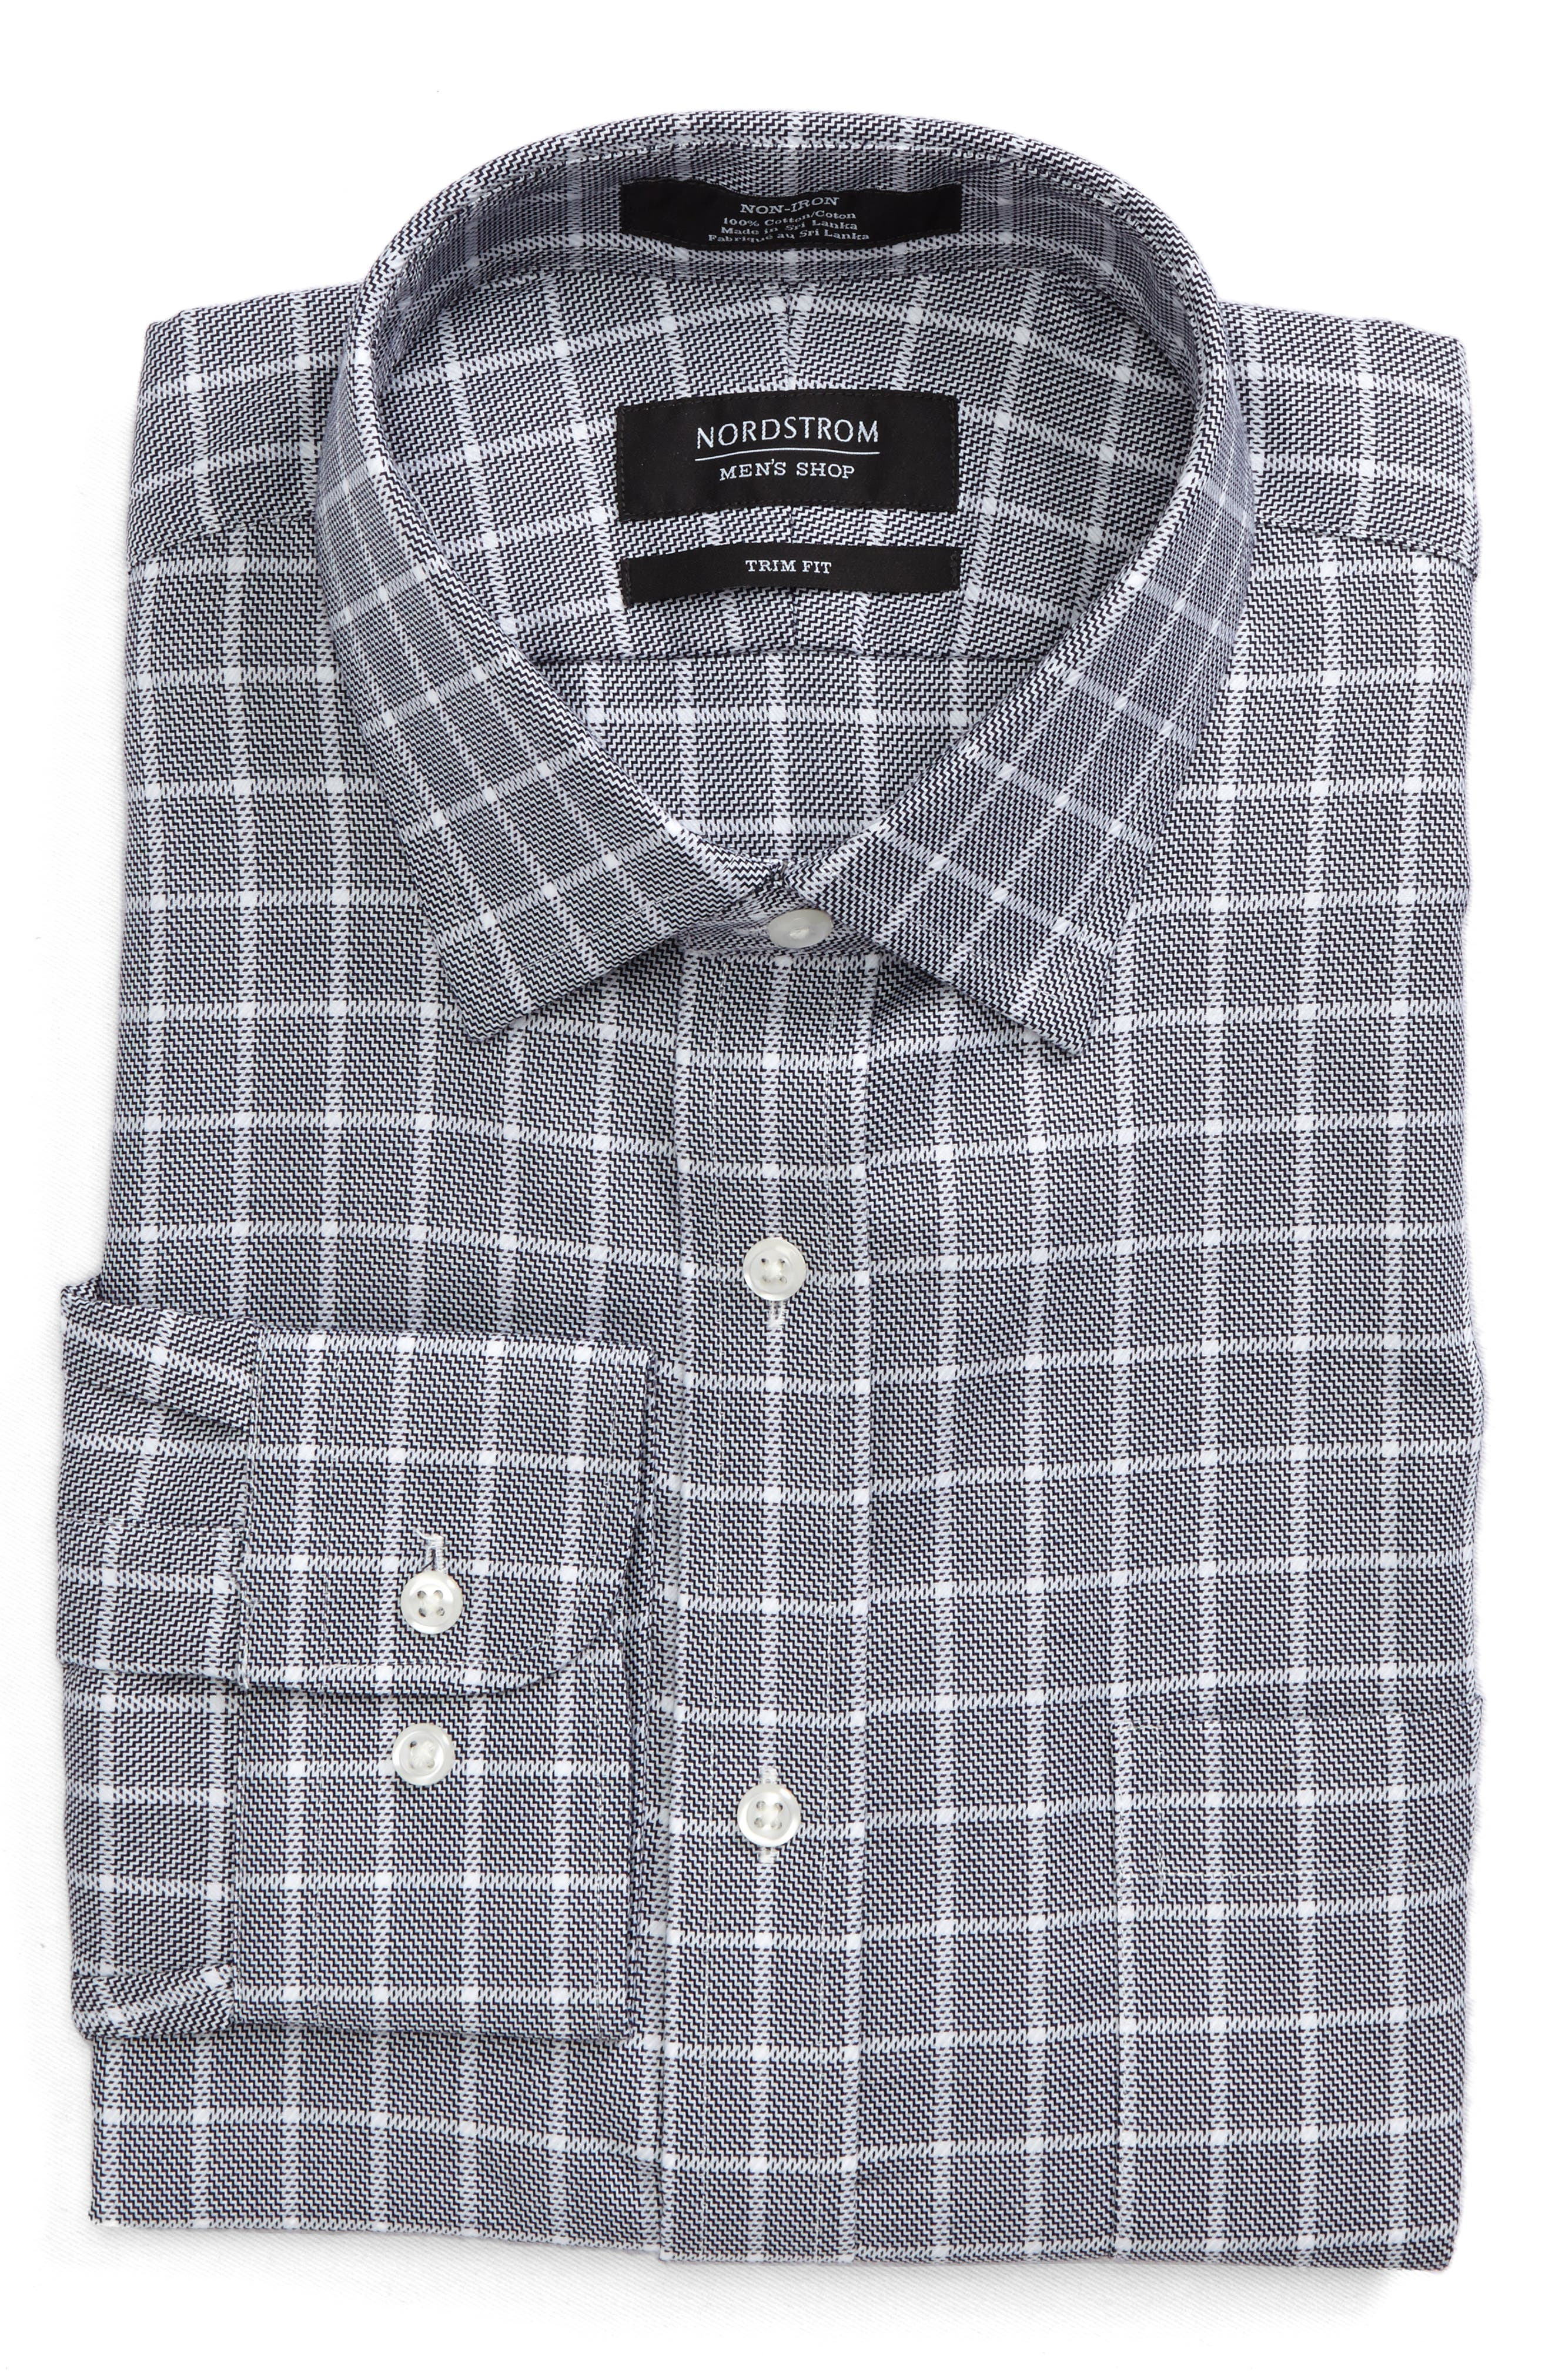 NORDSTROM MEN'S SHOP,                             Trim Fit Non-Iron Check Dress Shirt,                             Alternate thumbnail 5, color,                             001